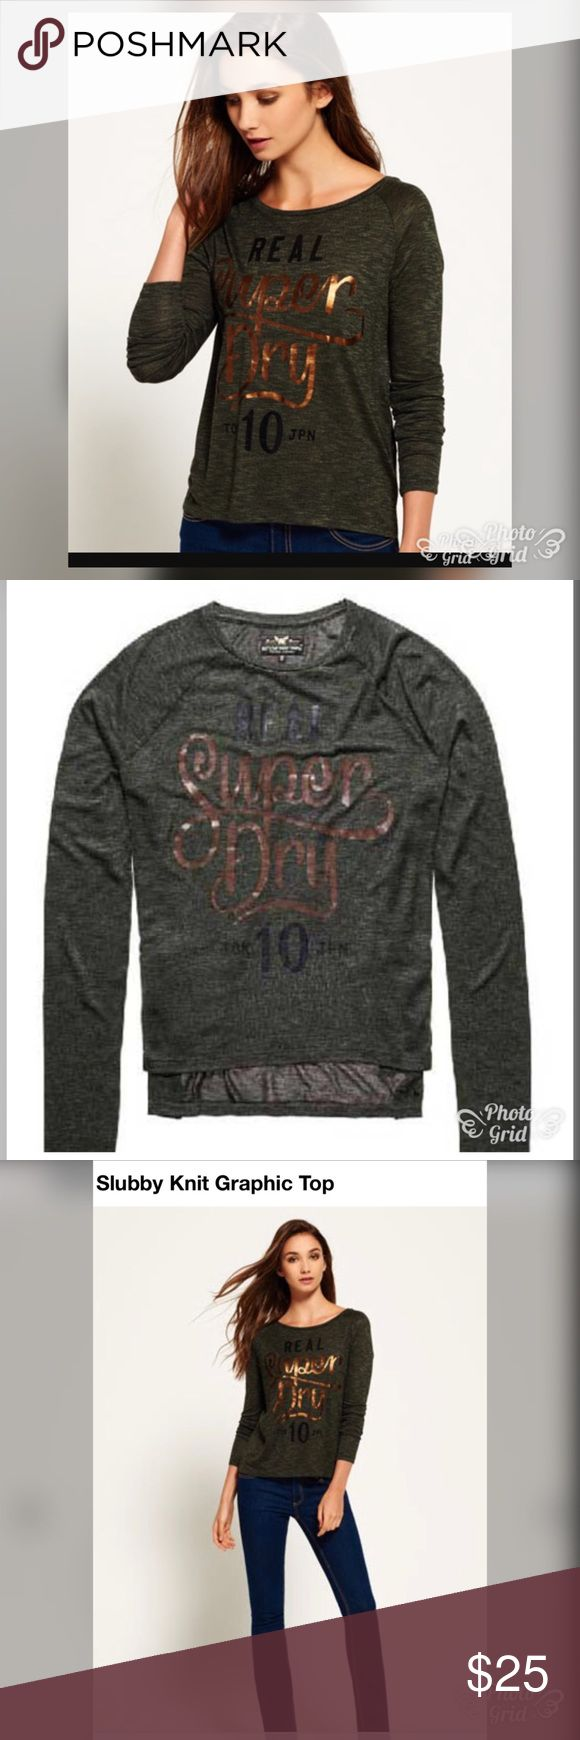 Sale alert 🚨 NWT super dry graphic top Super dry  large graphic top . A light weight Crew neck top featuring a long length in the back and super dry logo in the front with a bronze and black foil print details. Superdry Tops